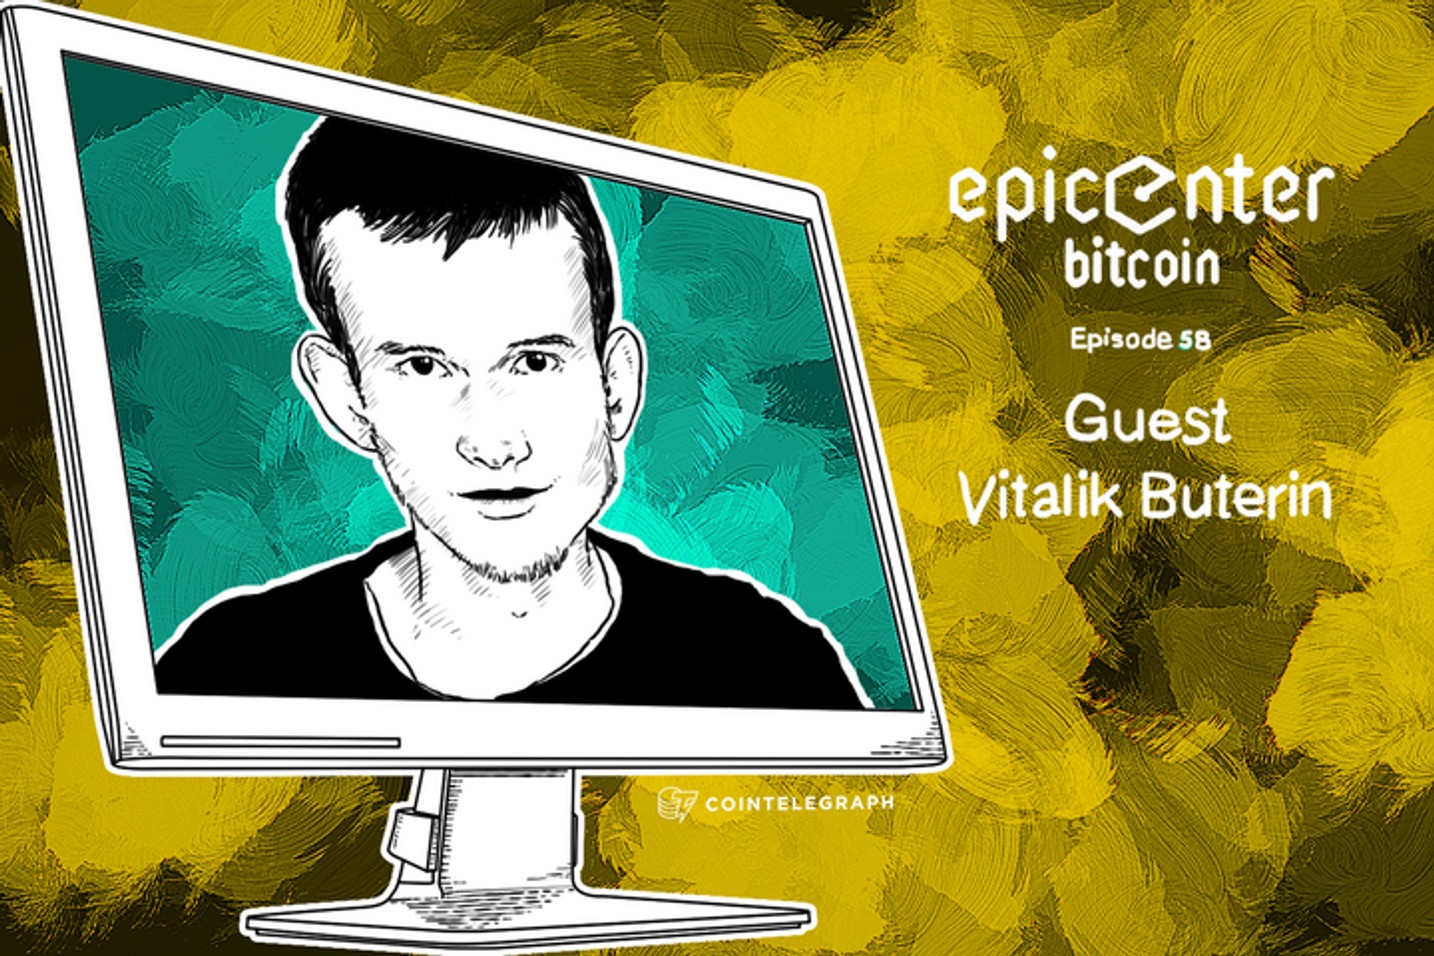 Epicenter Bitcoin Ep. 58: Vitalik Buterin on Proof-of-Stake and the Future of Crypto-Economics